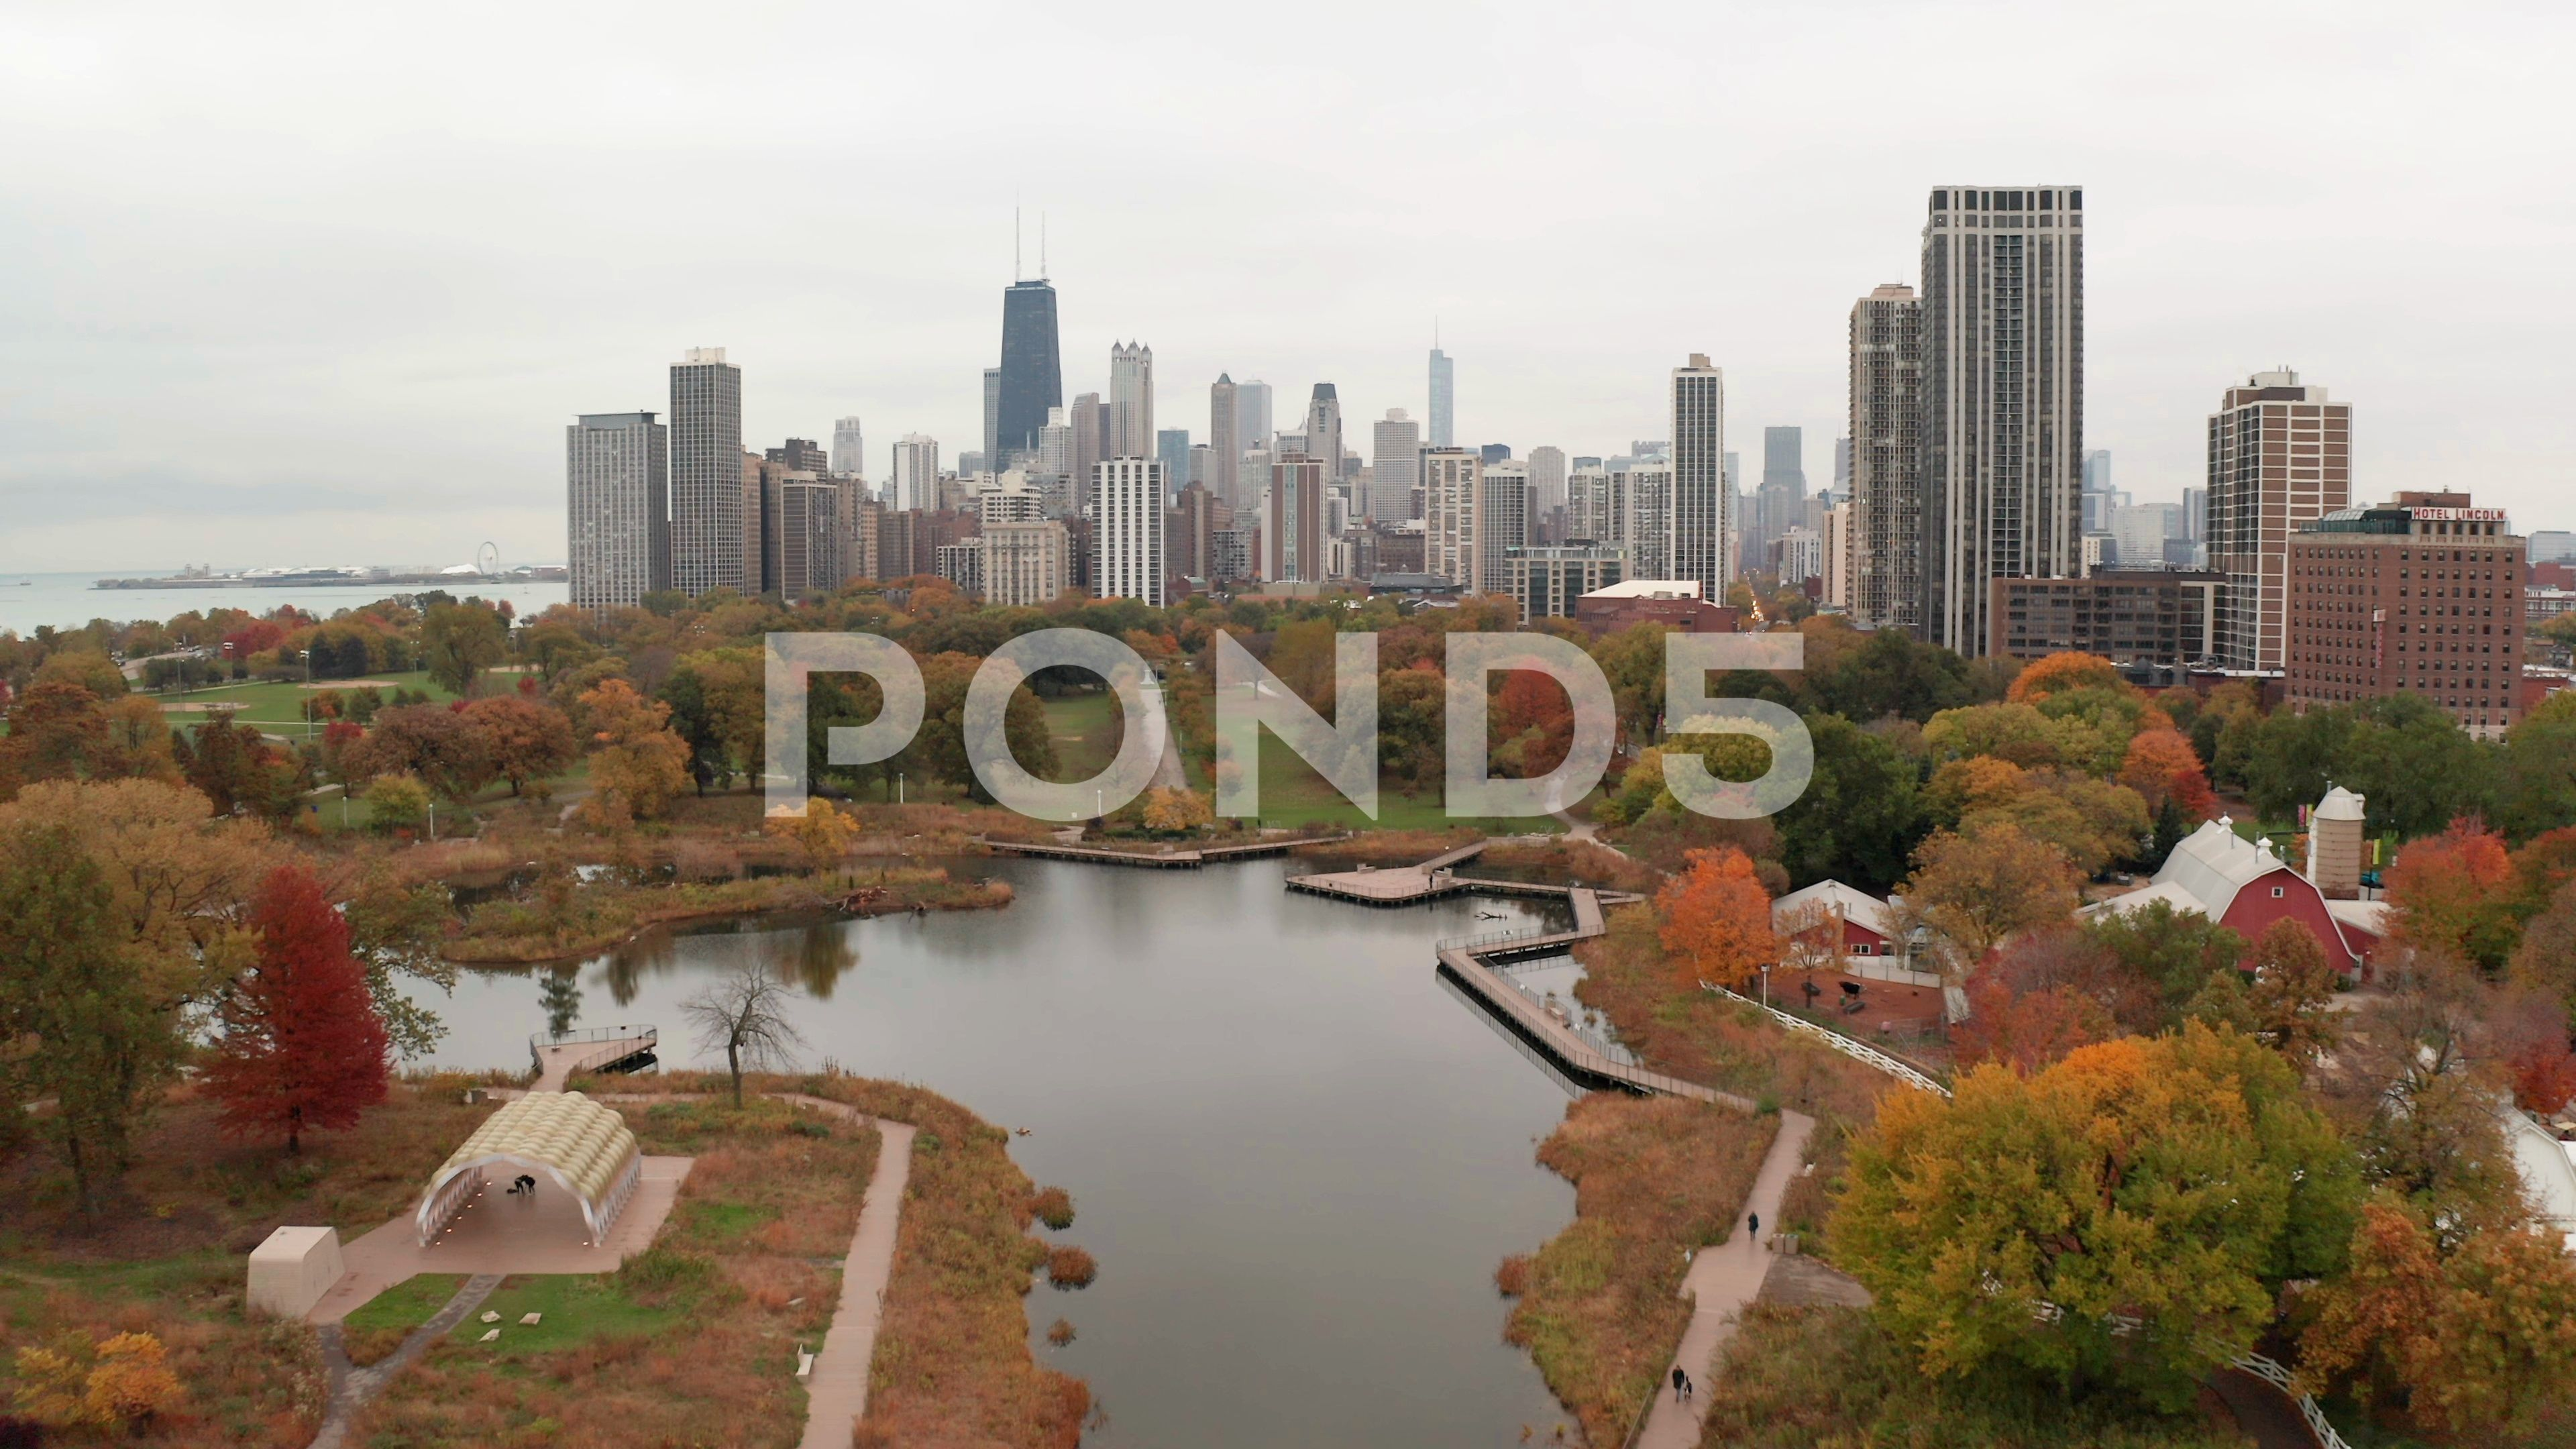 Chicago Downtown Aerial Fall Autumn Foliage Buildings Drone Flying Skyline Stock Footage Ad Fall Autumn Foliage Chicago In 2020 Downtown Chicago Fall Foliage Aerial